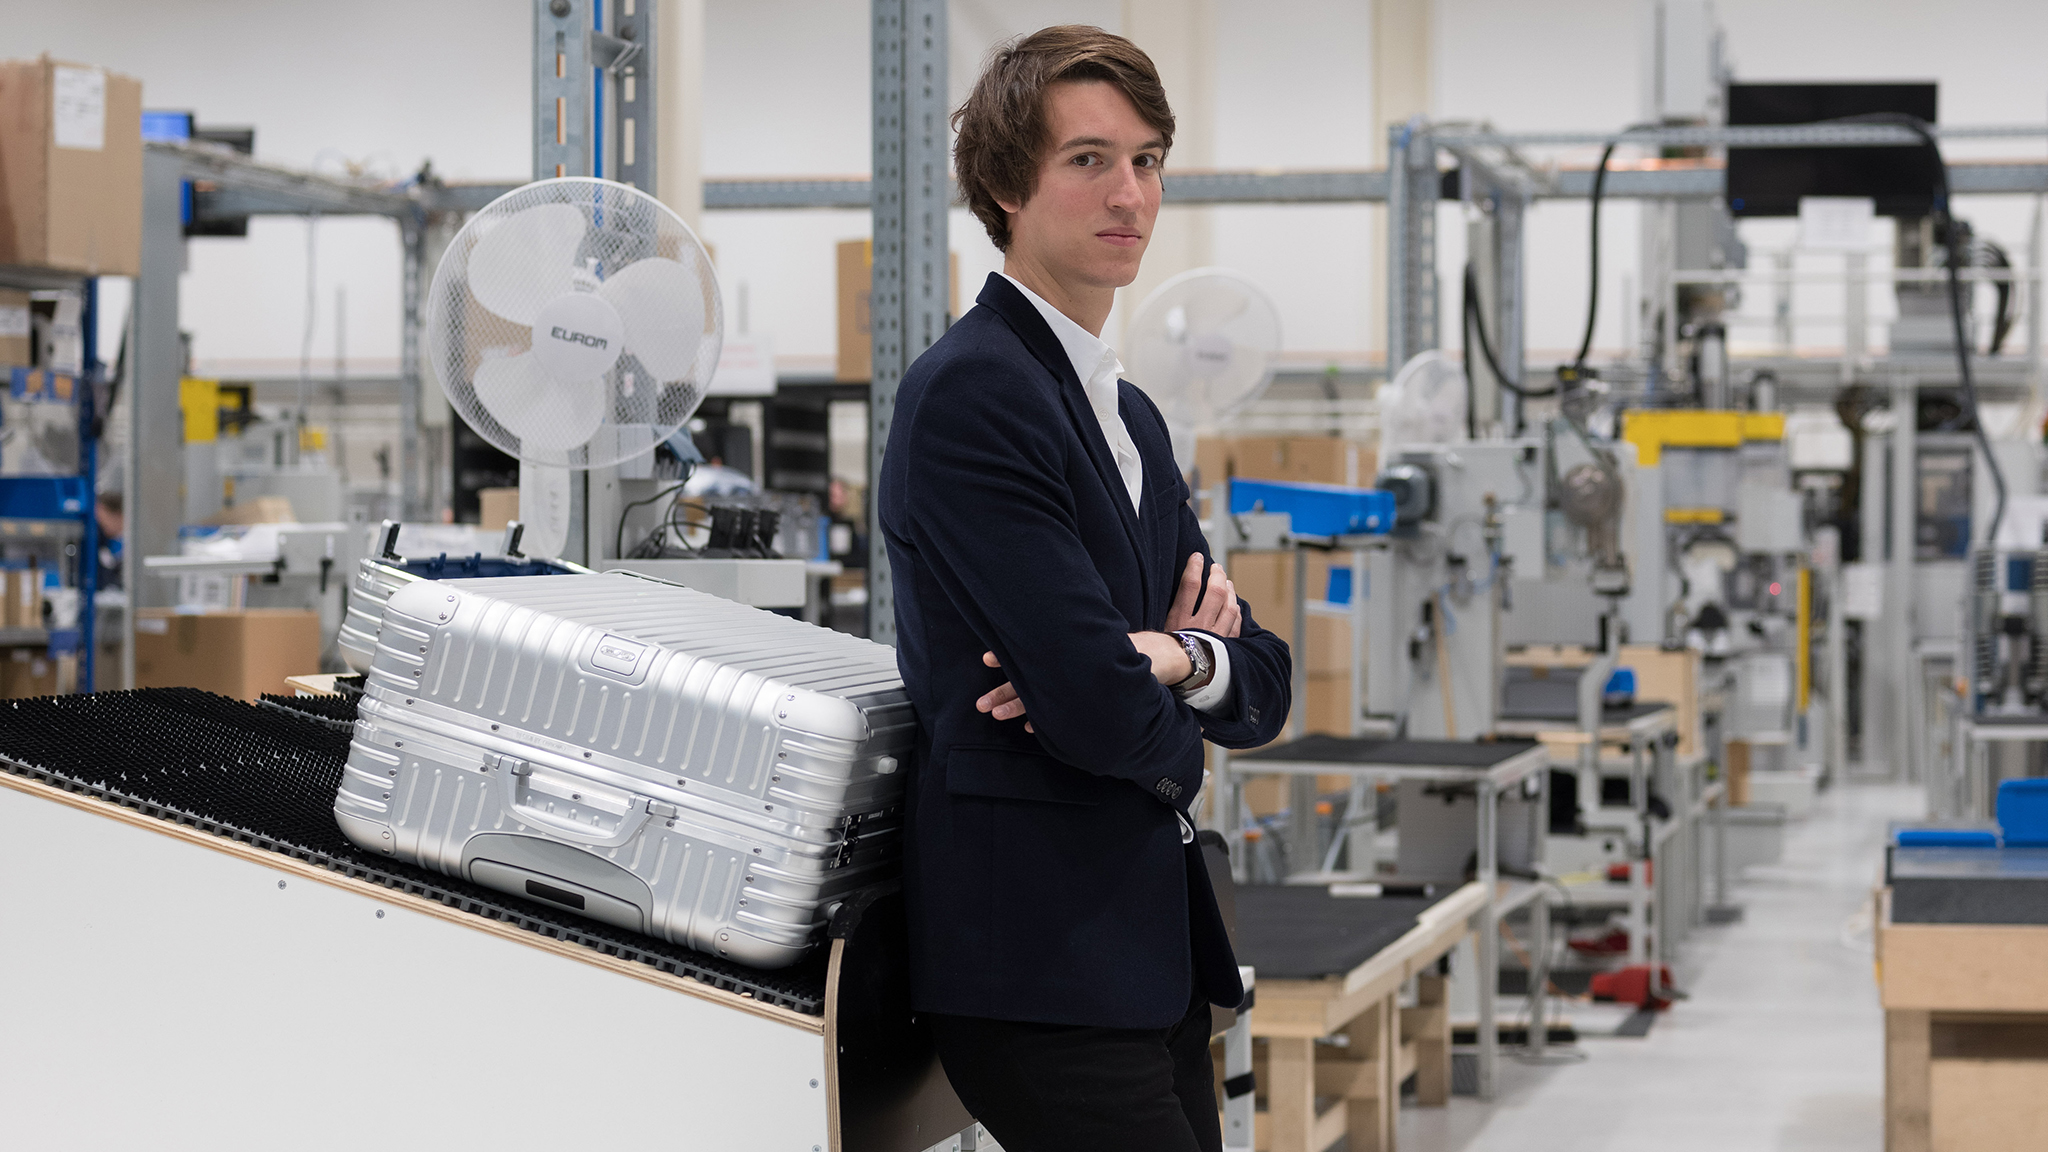 Alexandre Arnault  Ceo Rimowa factory    photographed for the FT by Albrecht Fuchs